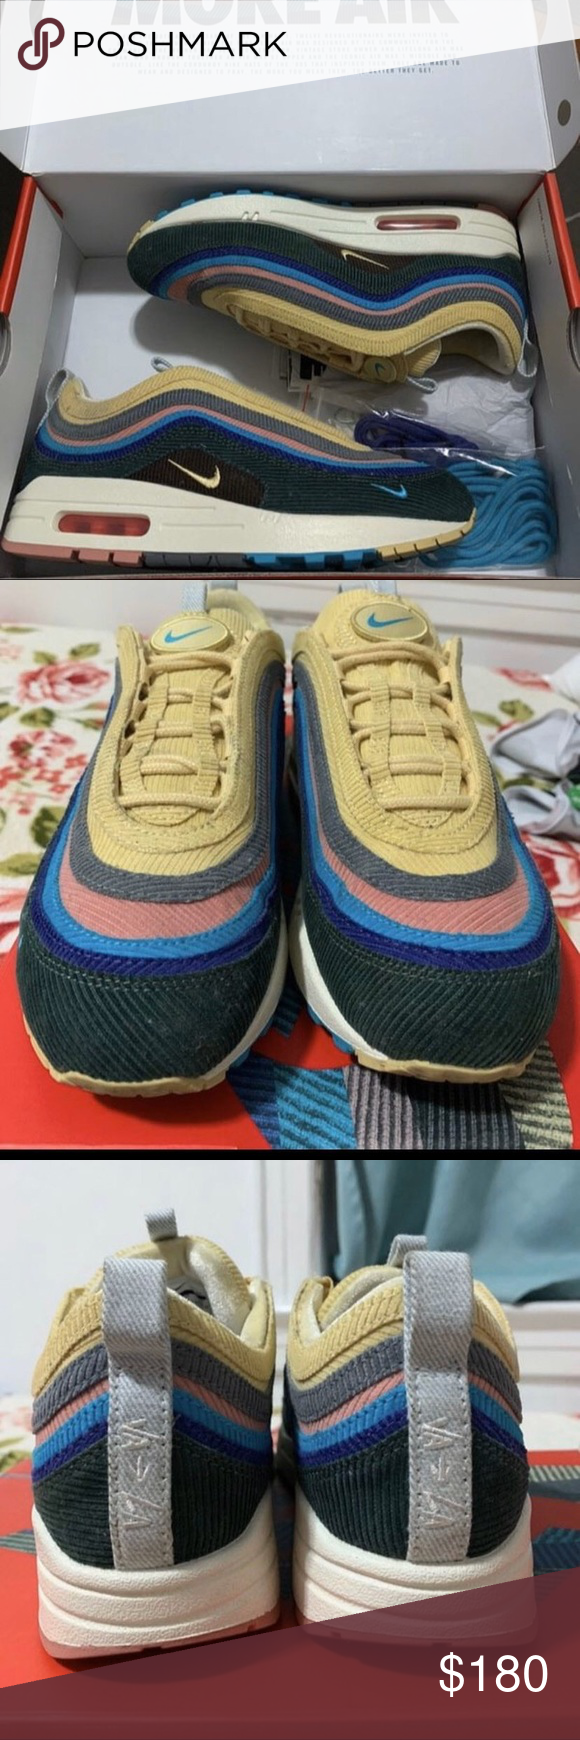 Air Max Sean Wotherspoon All Sizes 713 Authentic (OG ALL